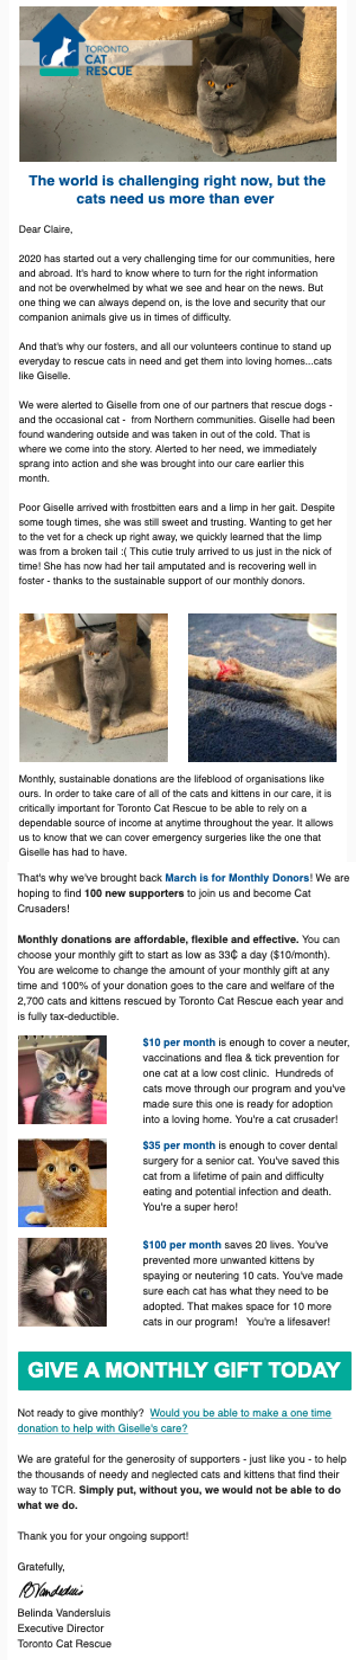 Toronto Cat Rescue fundraising appeal during pandemic